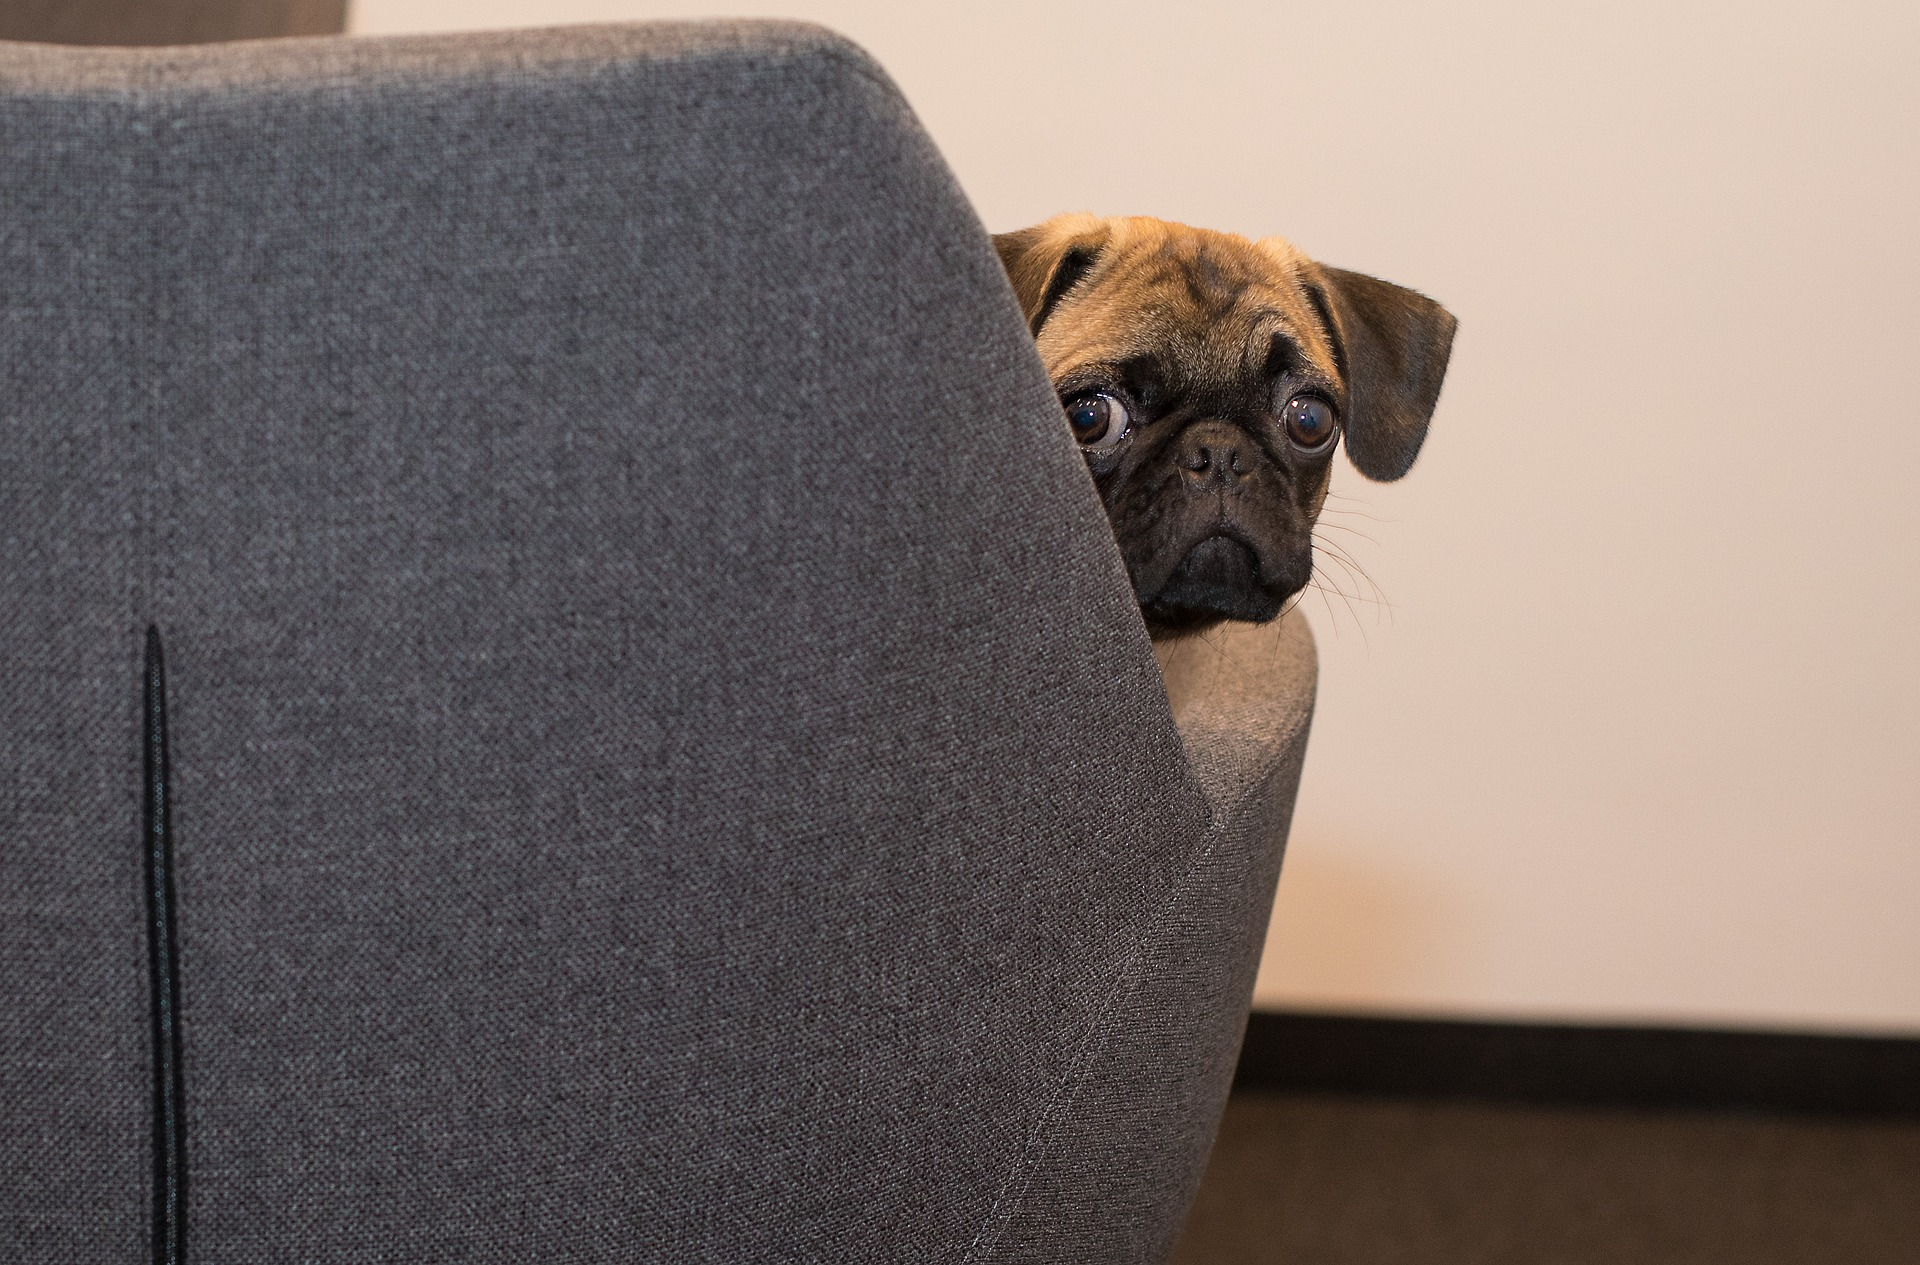 pug peeking out from a couch